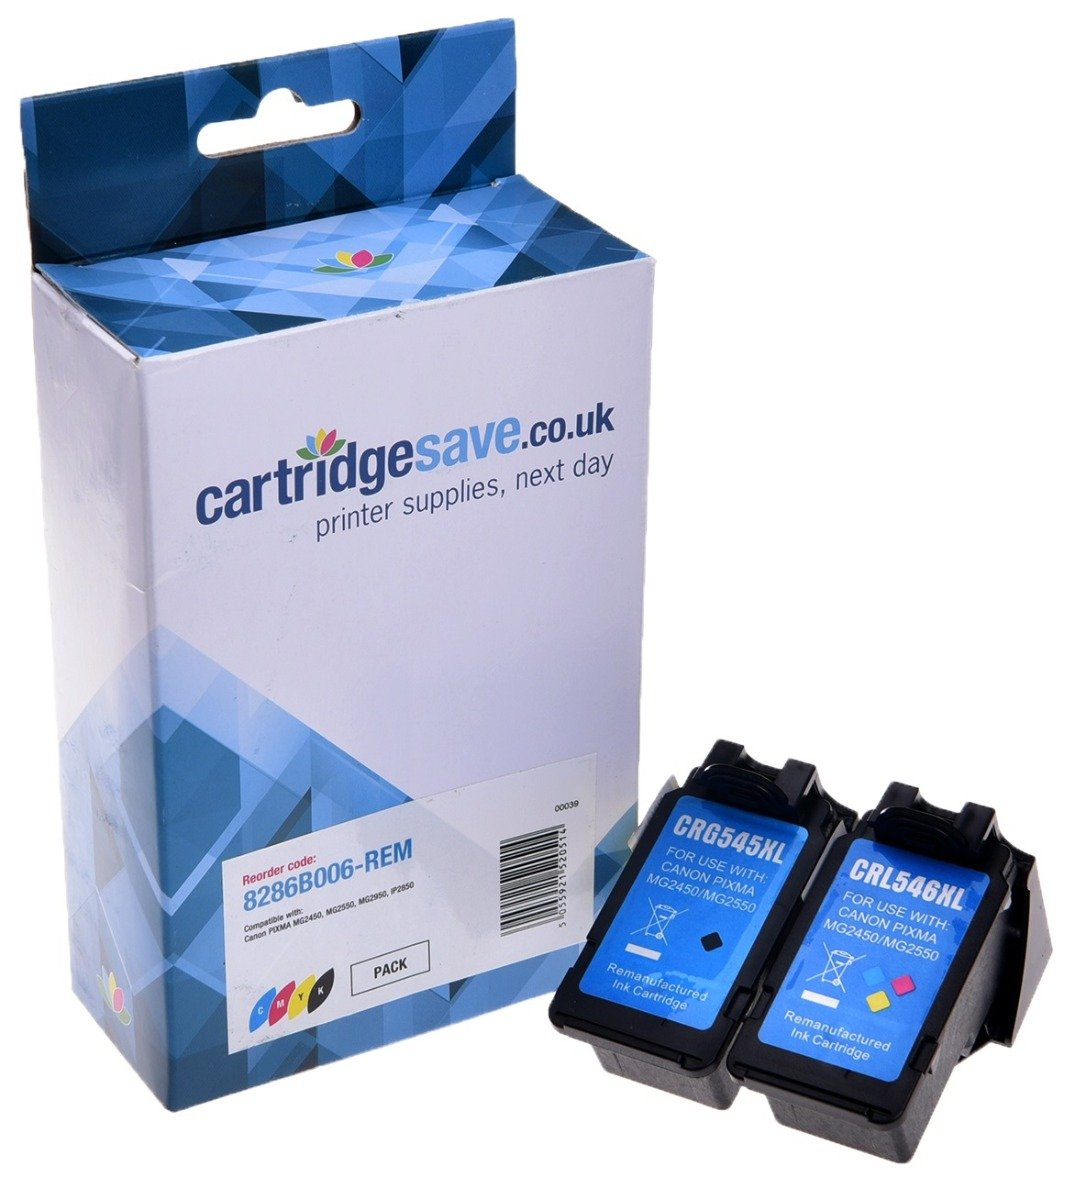 Compatible High Capacity Black & Tri-Colour Canon PG-545XL & CL-546XL Ink Multipack (Replaces Canon 8286B006)